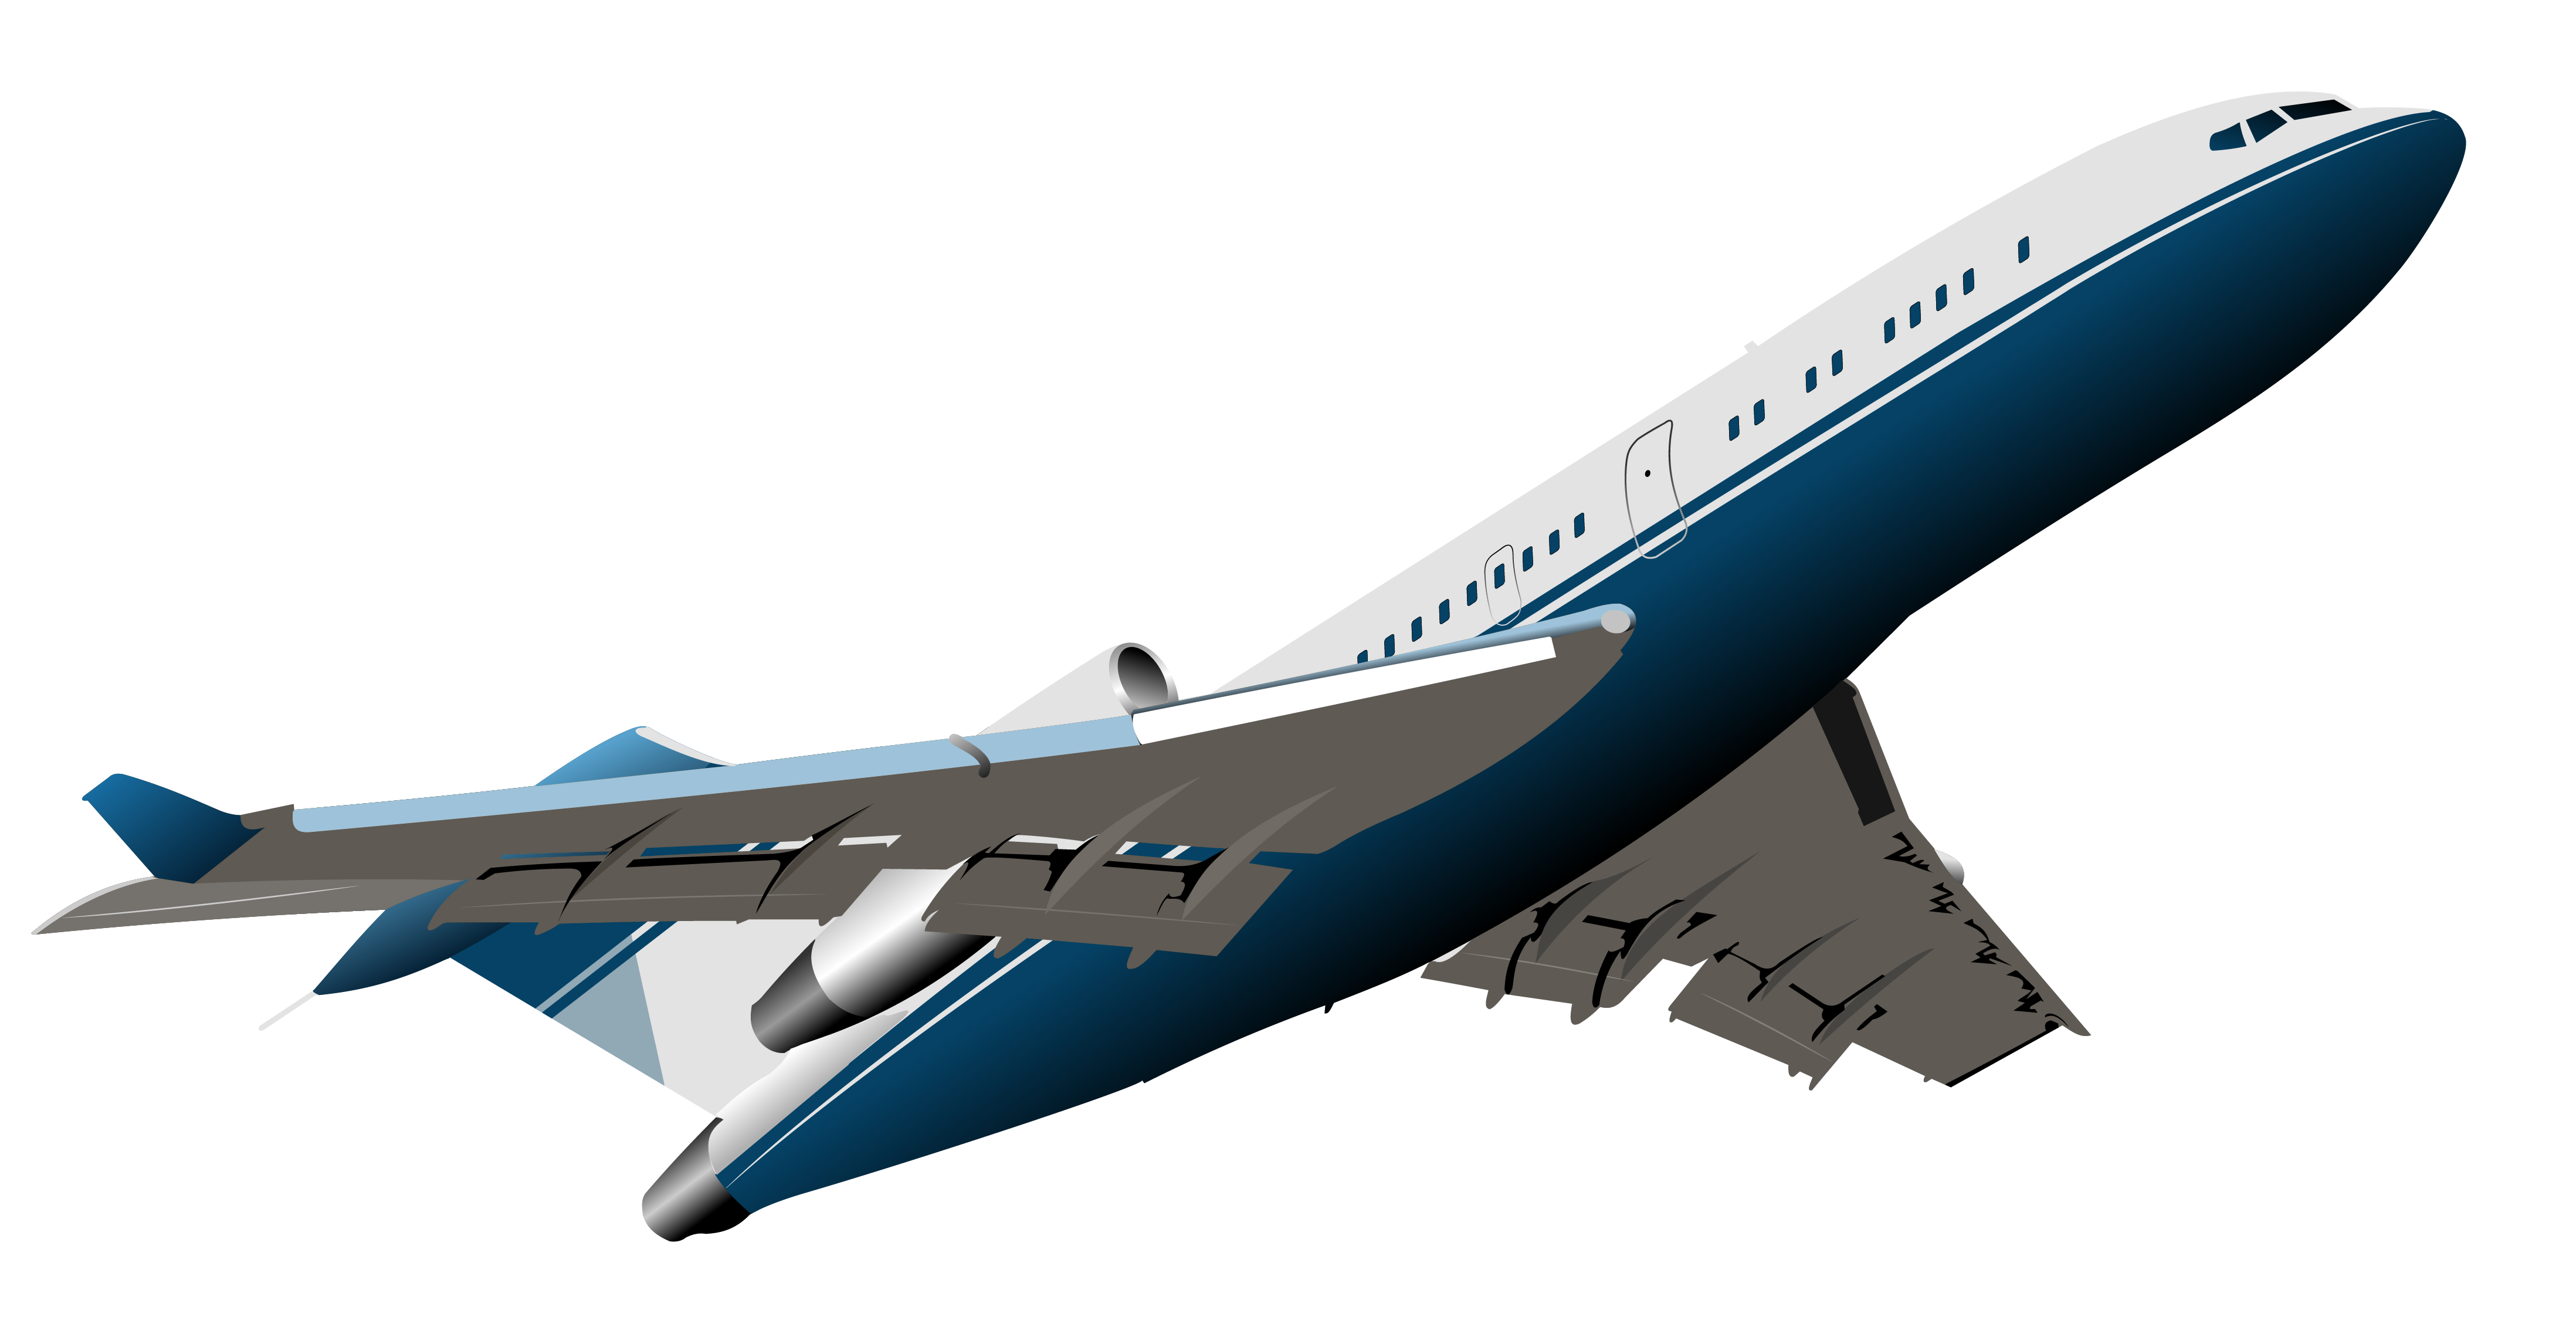 Air Plane Png Hd - Airplane Full Hd Clipart, Transparent background PNG HD thumbnail